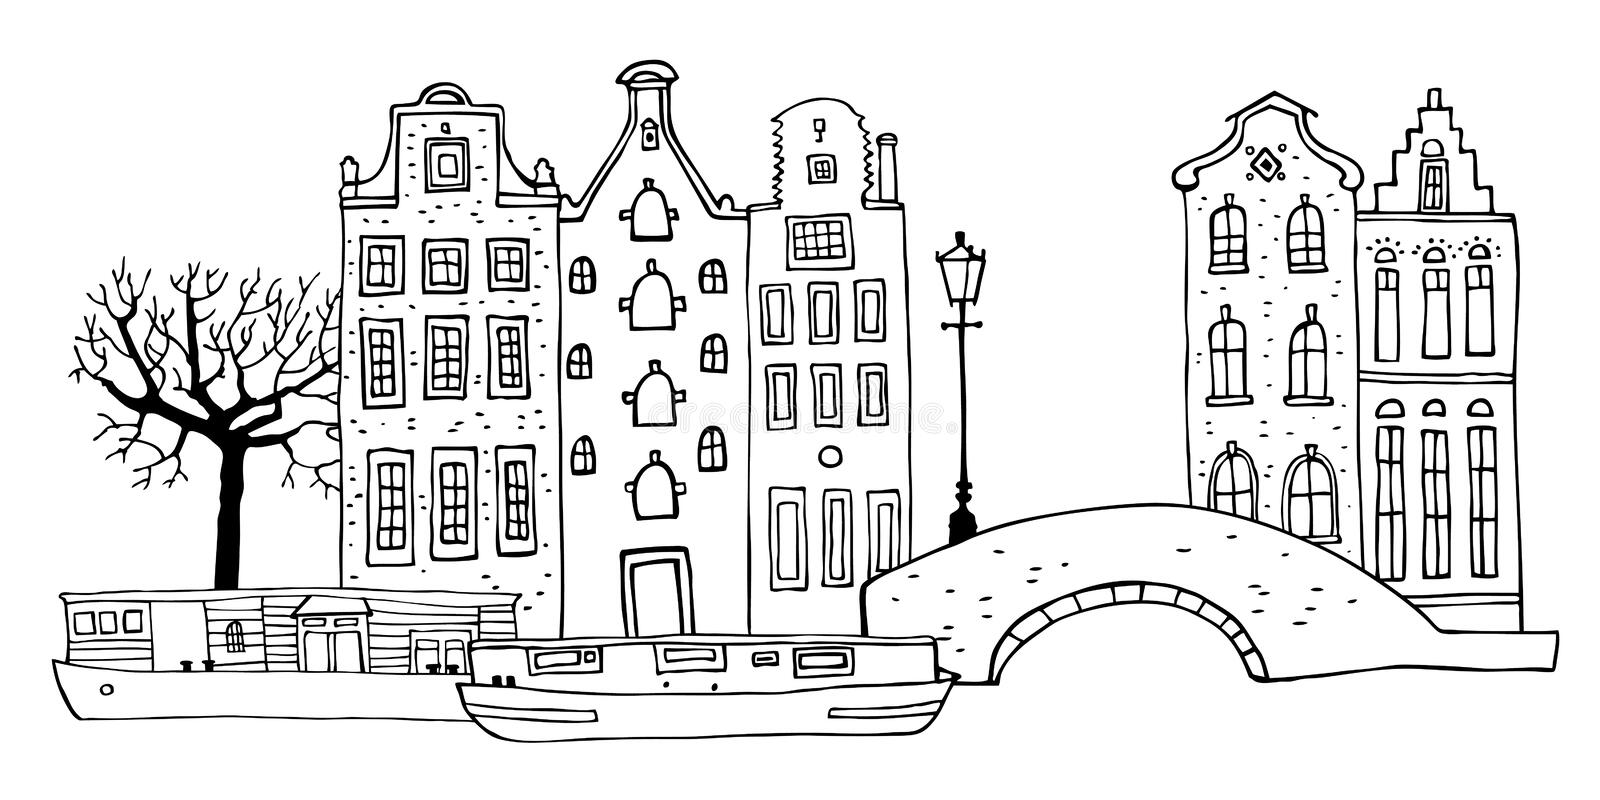 Amsterdam street scene. Vector outline sketch hand drawn illustration. Houses with bridge, lantern, trees and boats stock illustration